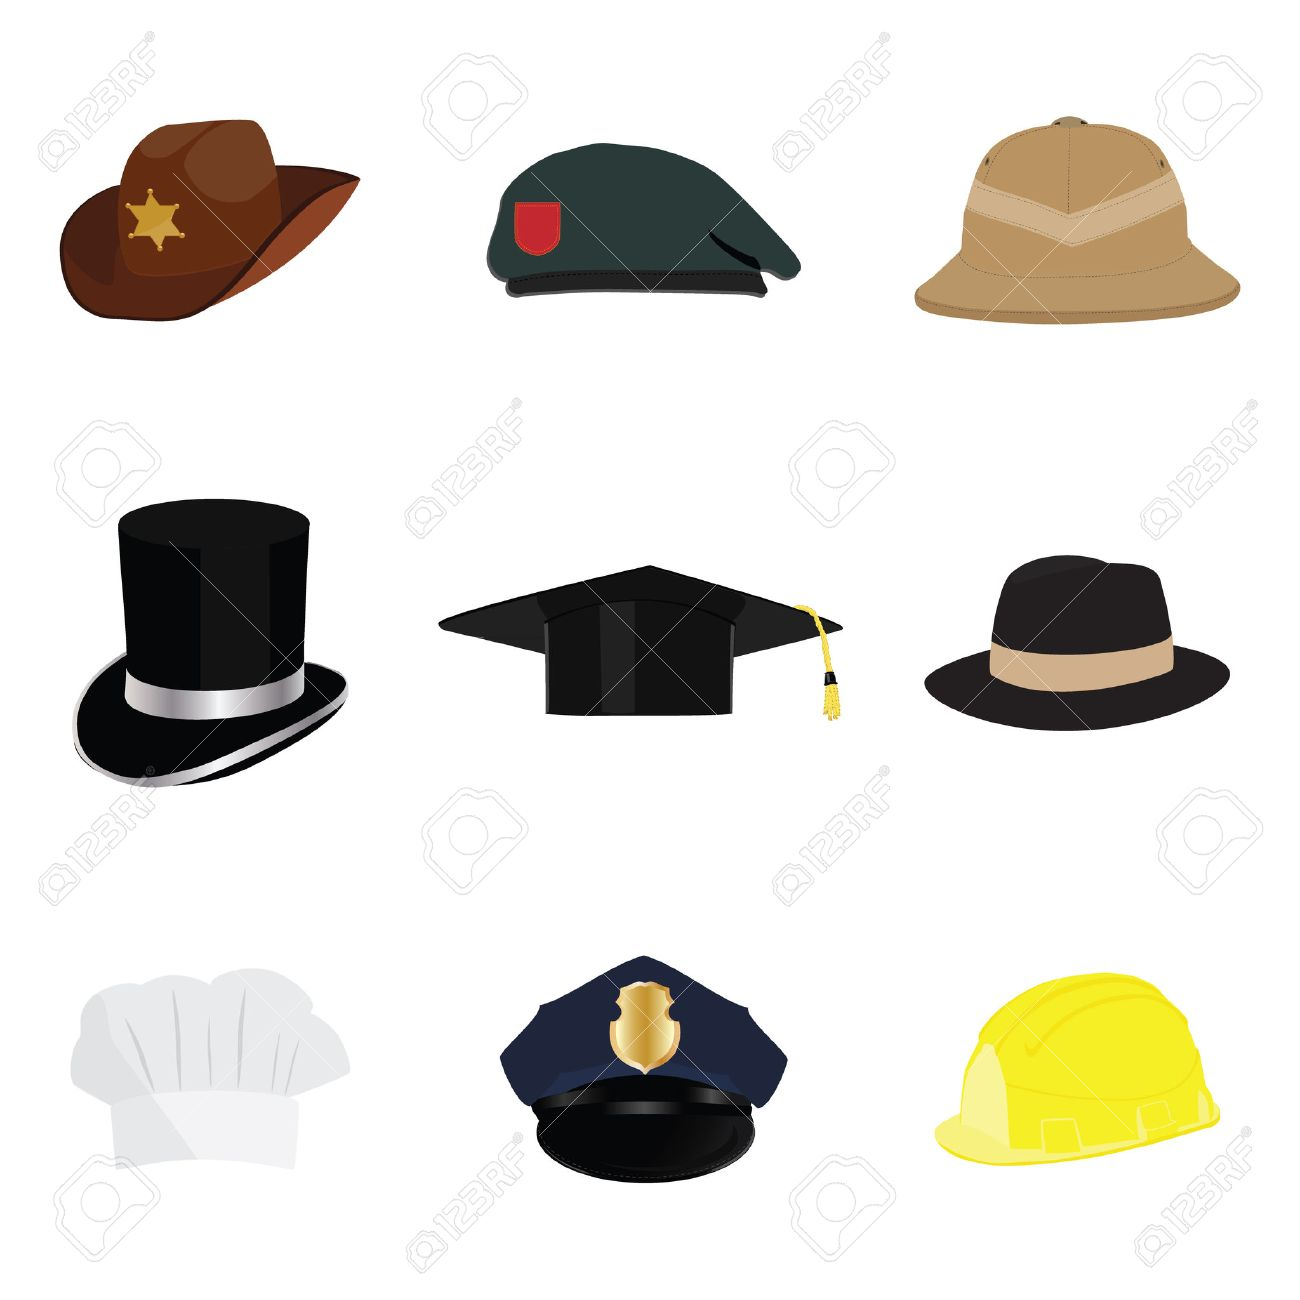 Hats And Helmets Collection a7c7f277fe4